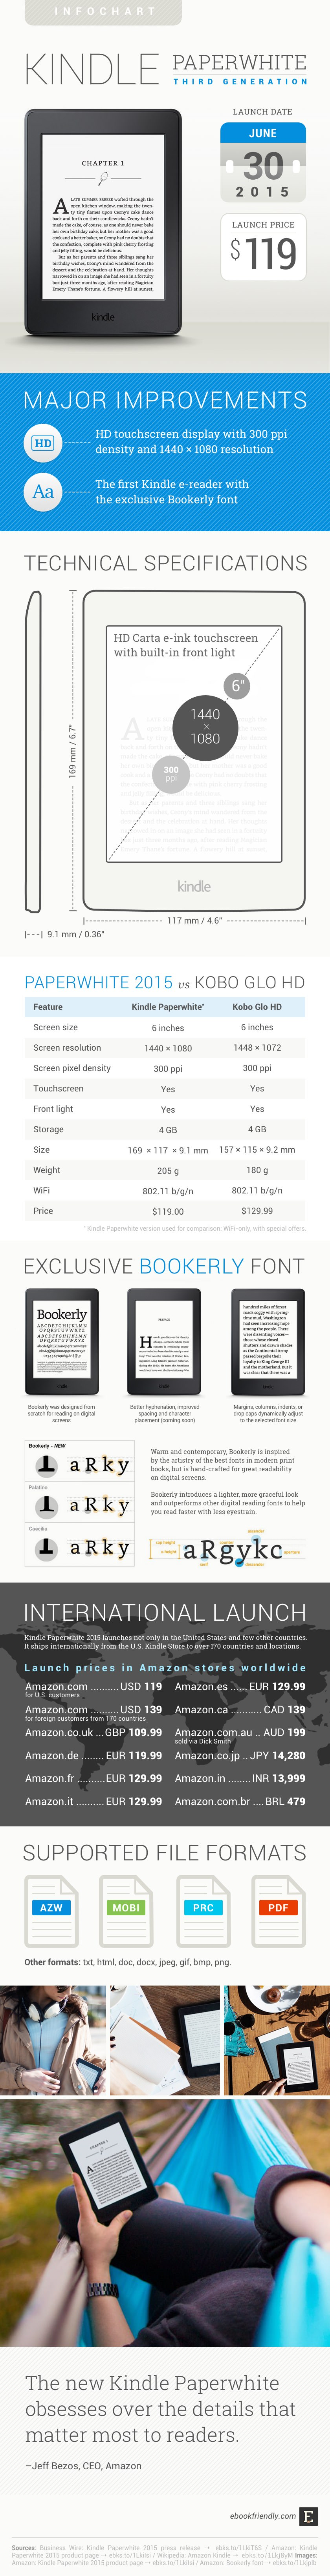 Kindle Paperwhite 2015: everything you need to know #infographic